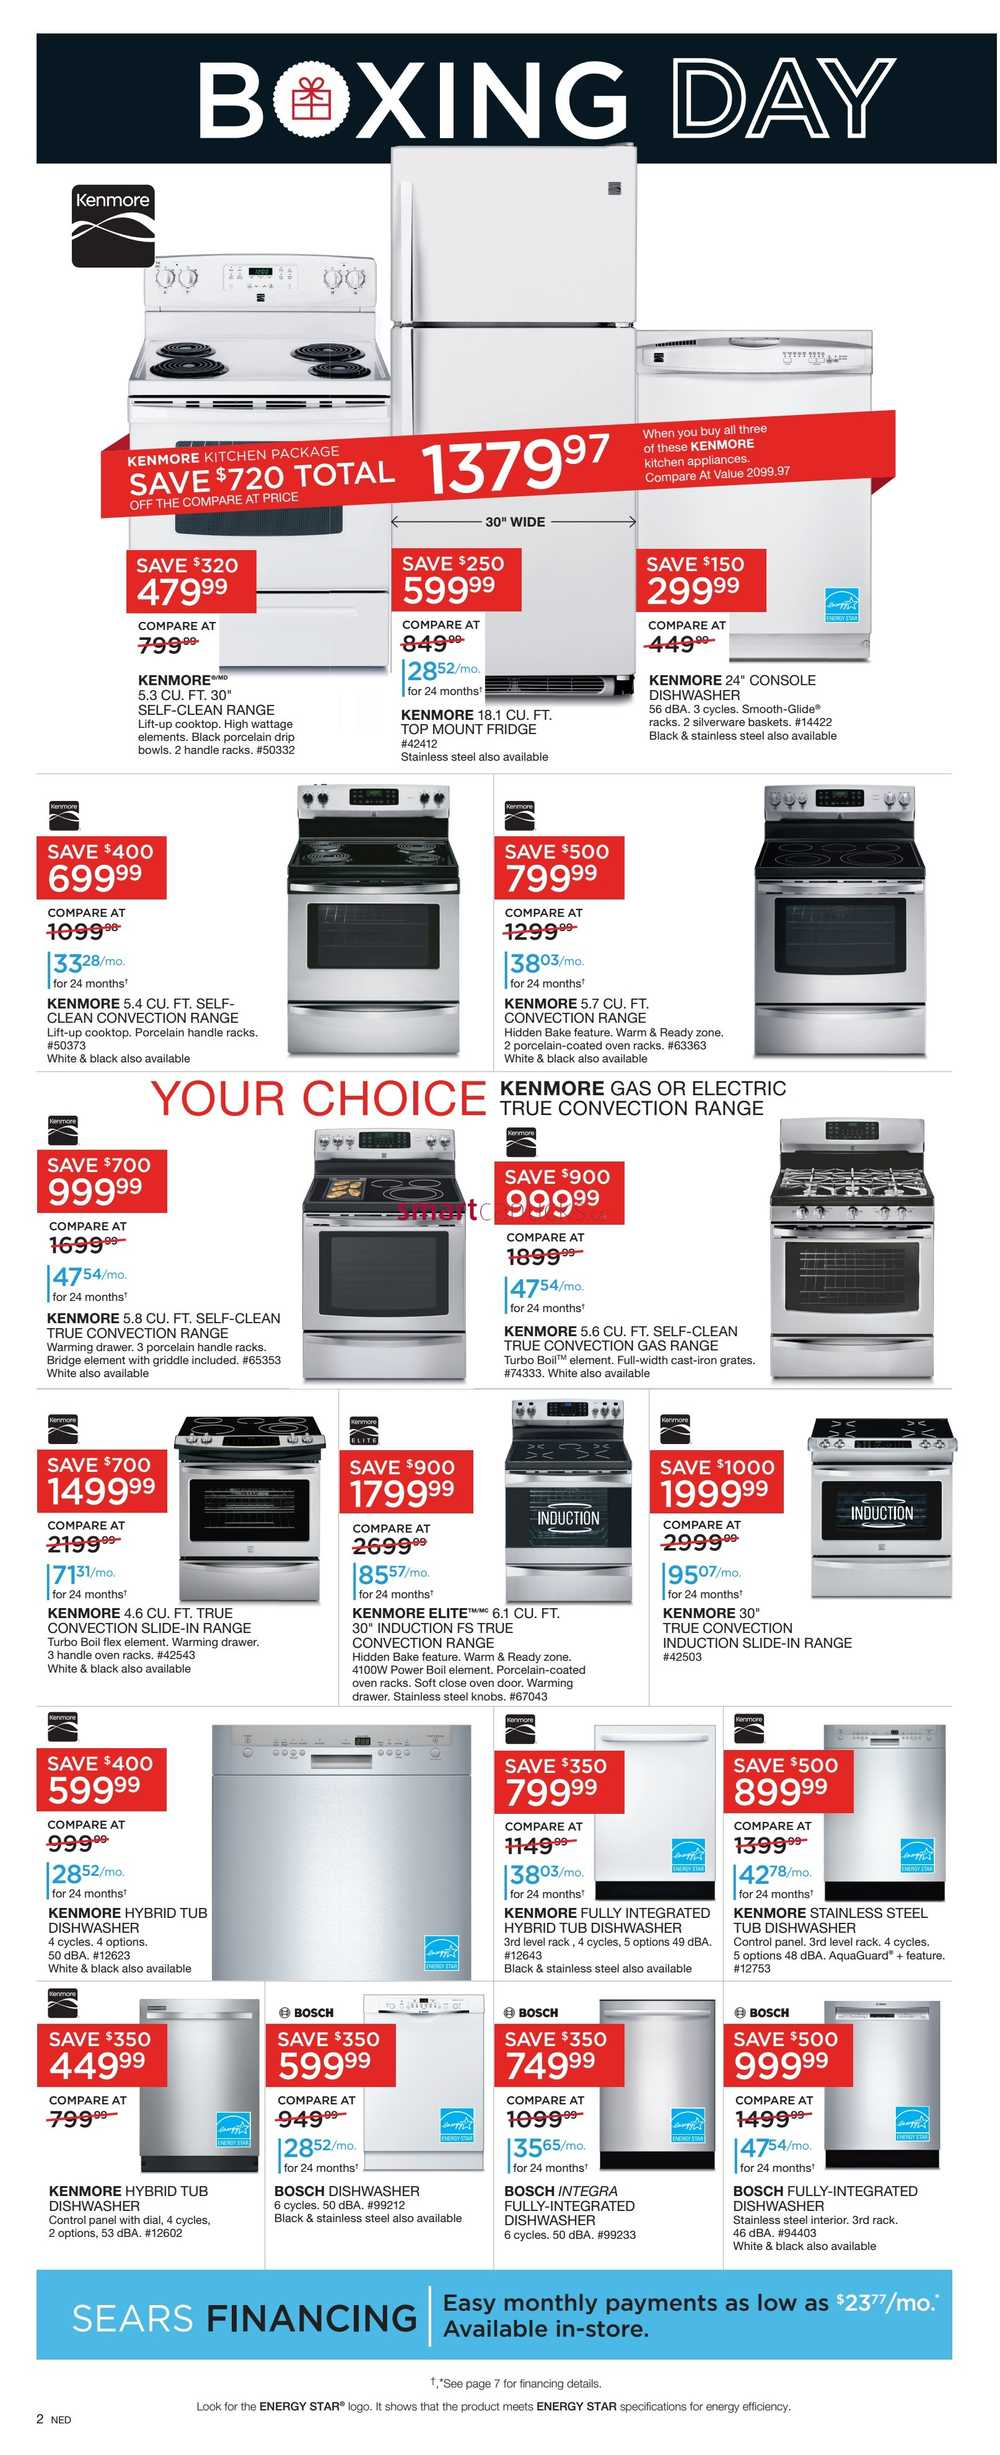 Whether you're shopping for your home, car, office, or backyard, there's a good chance you'll find what you're looking for at Sears. The respected retailer's inventory is both comprehensive and diverse, encompassing everything from stainless steel refrigerators to above-ground trampolines.